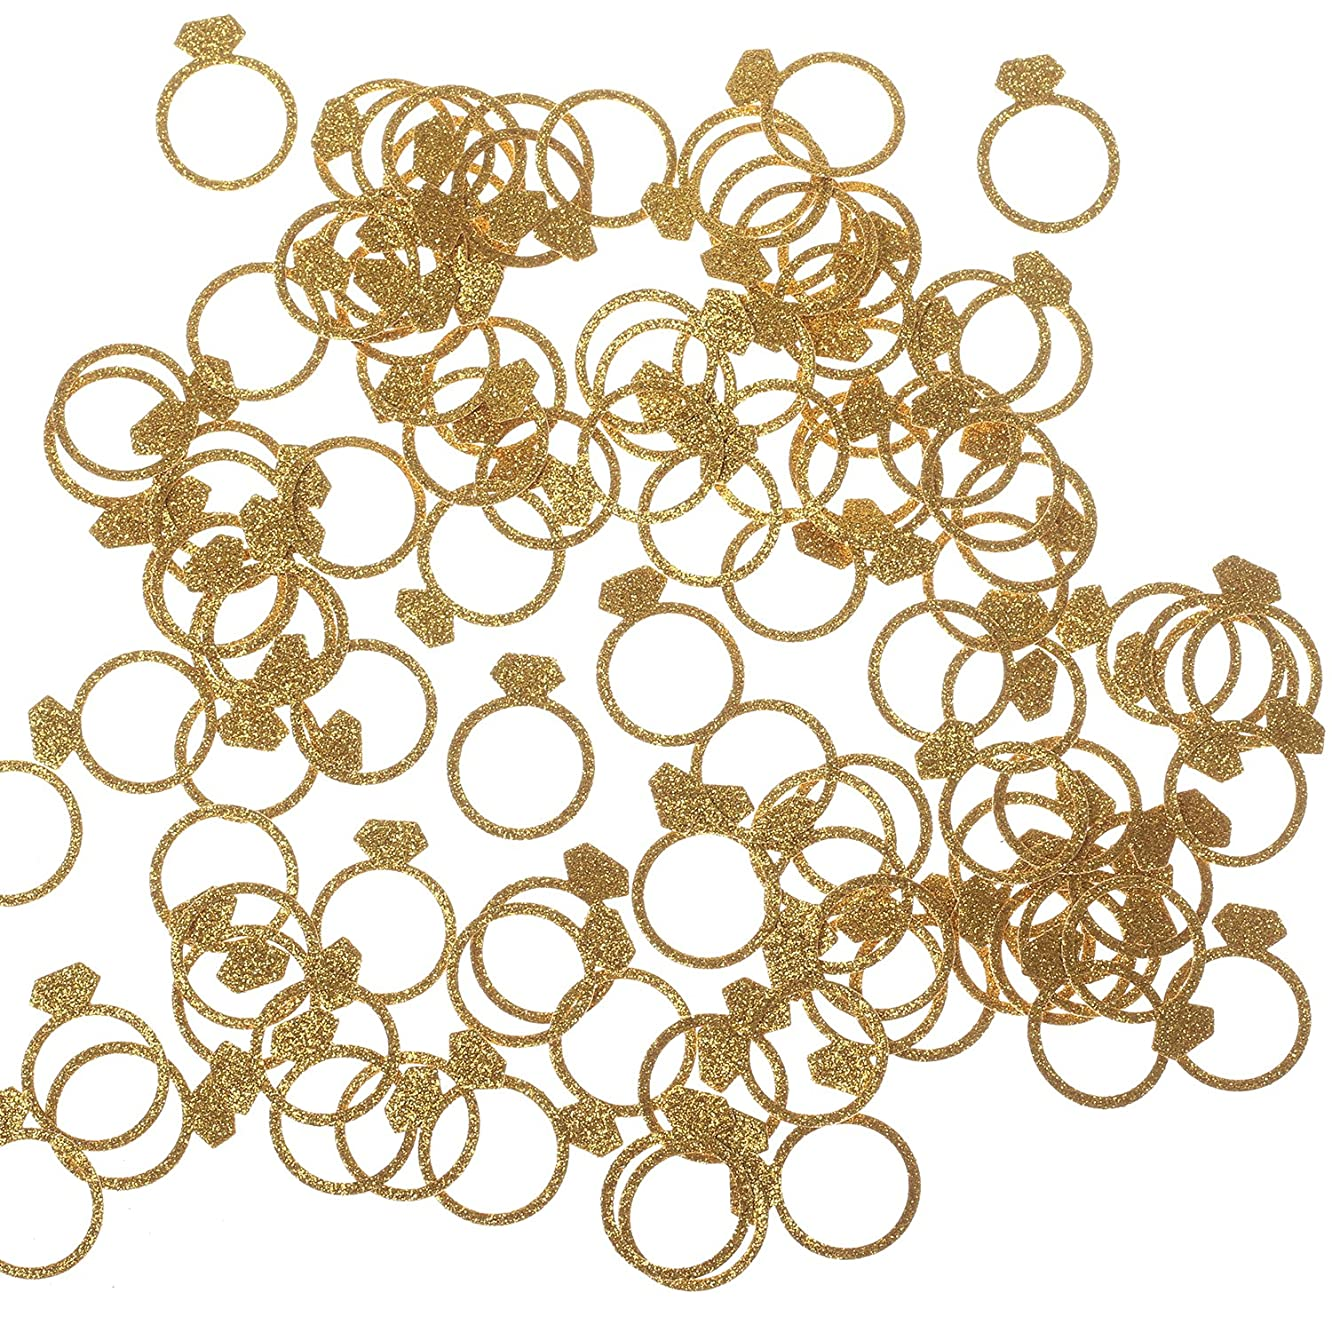 Ling's moment Diamond Ring Confetti for Wedding, Bridal Shower, Bachelorette Decor & Engagement Ring Confetti, Gold Table Glitter Paper Confetti, DIY Kits, 100pcs of 1